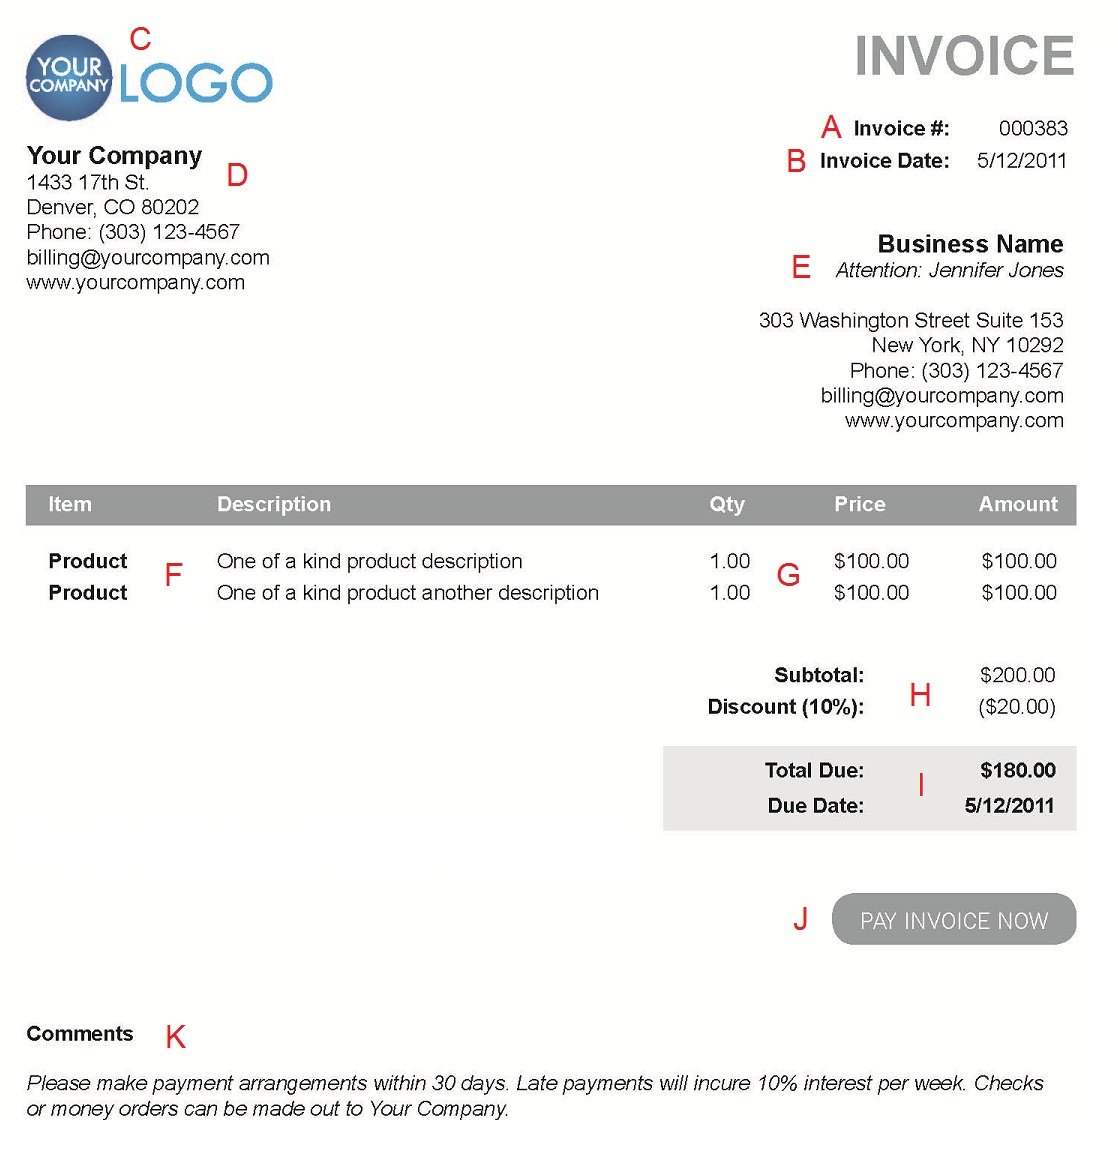 Opposenewapstandardsus  Marvelous The  Different Sections Of An Electronic Payment Invoice With Entrancing A  With Delectable Timesheet And Invoice Software Also Late Invoice Letter In Addition Billing Invoicing Software And Retail Invoice Software As Well As Invoice Android Additionally How Does Invoice Discounting Work From Paysimplecom With Opposenewapstandardsus  Entrancing The  Different Sections Of An Electronic Payment Invoice With Delectable A  And Marvelous Timesheet And Invoice Software Also Late Invoice Letter In Addition Billing Invoicing Software From Paysimplecom